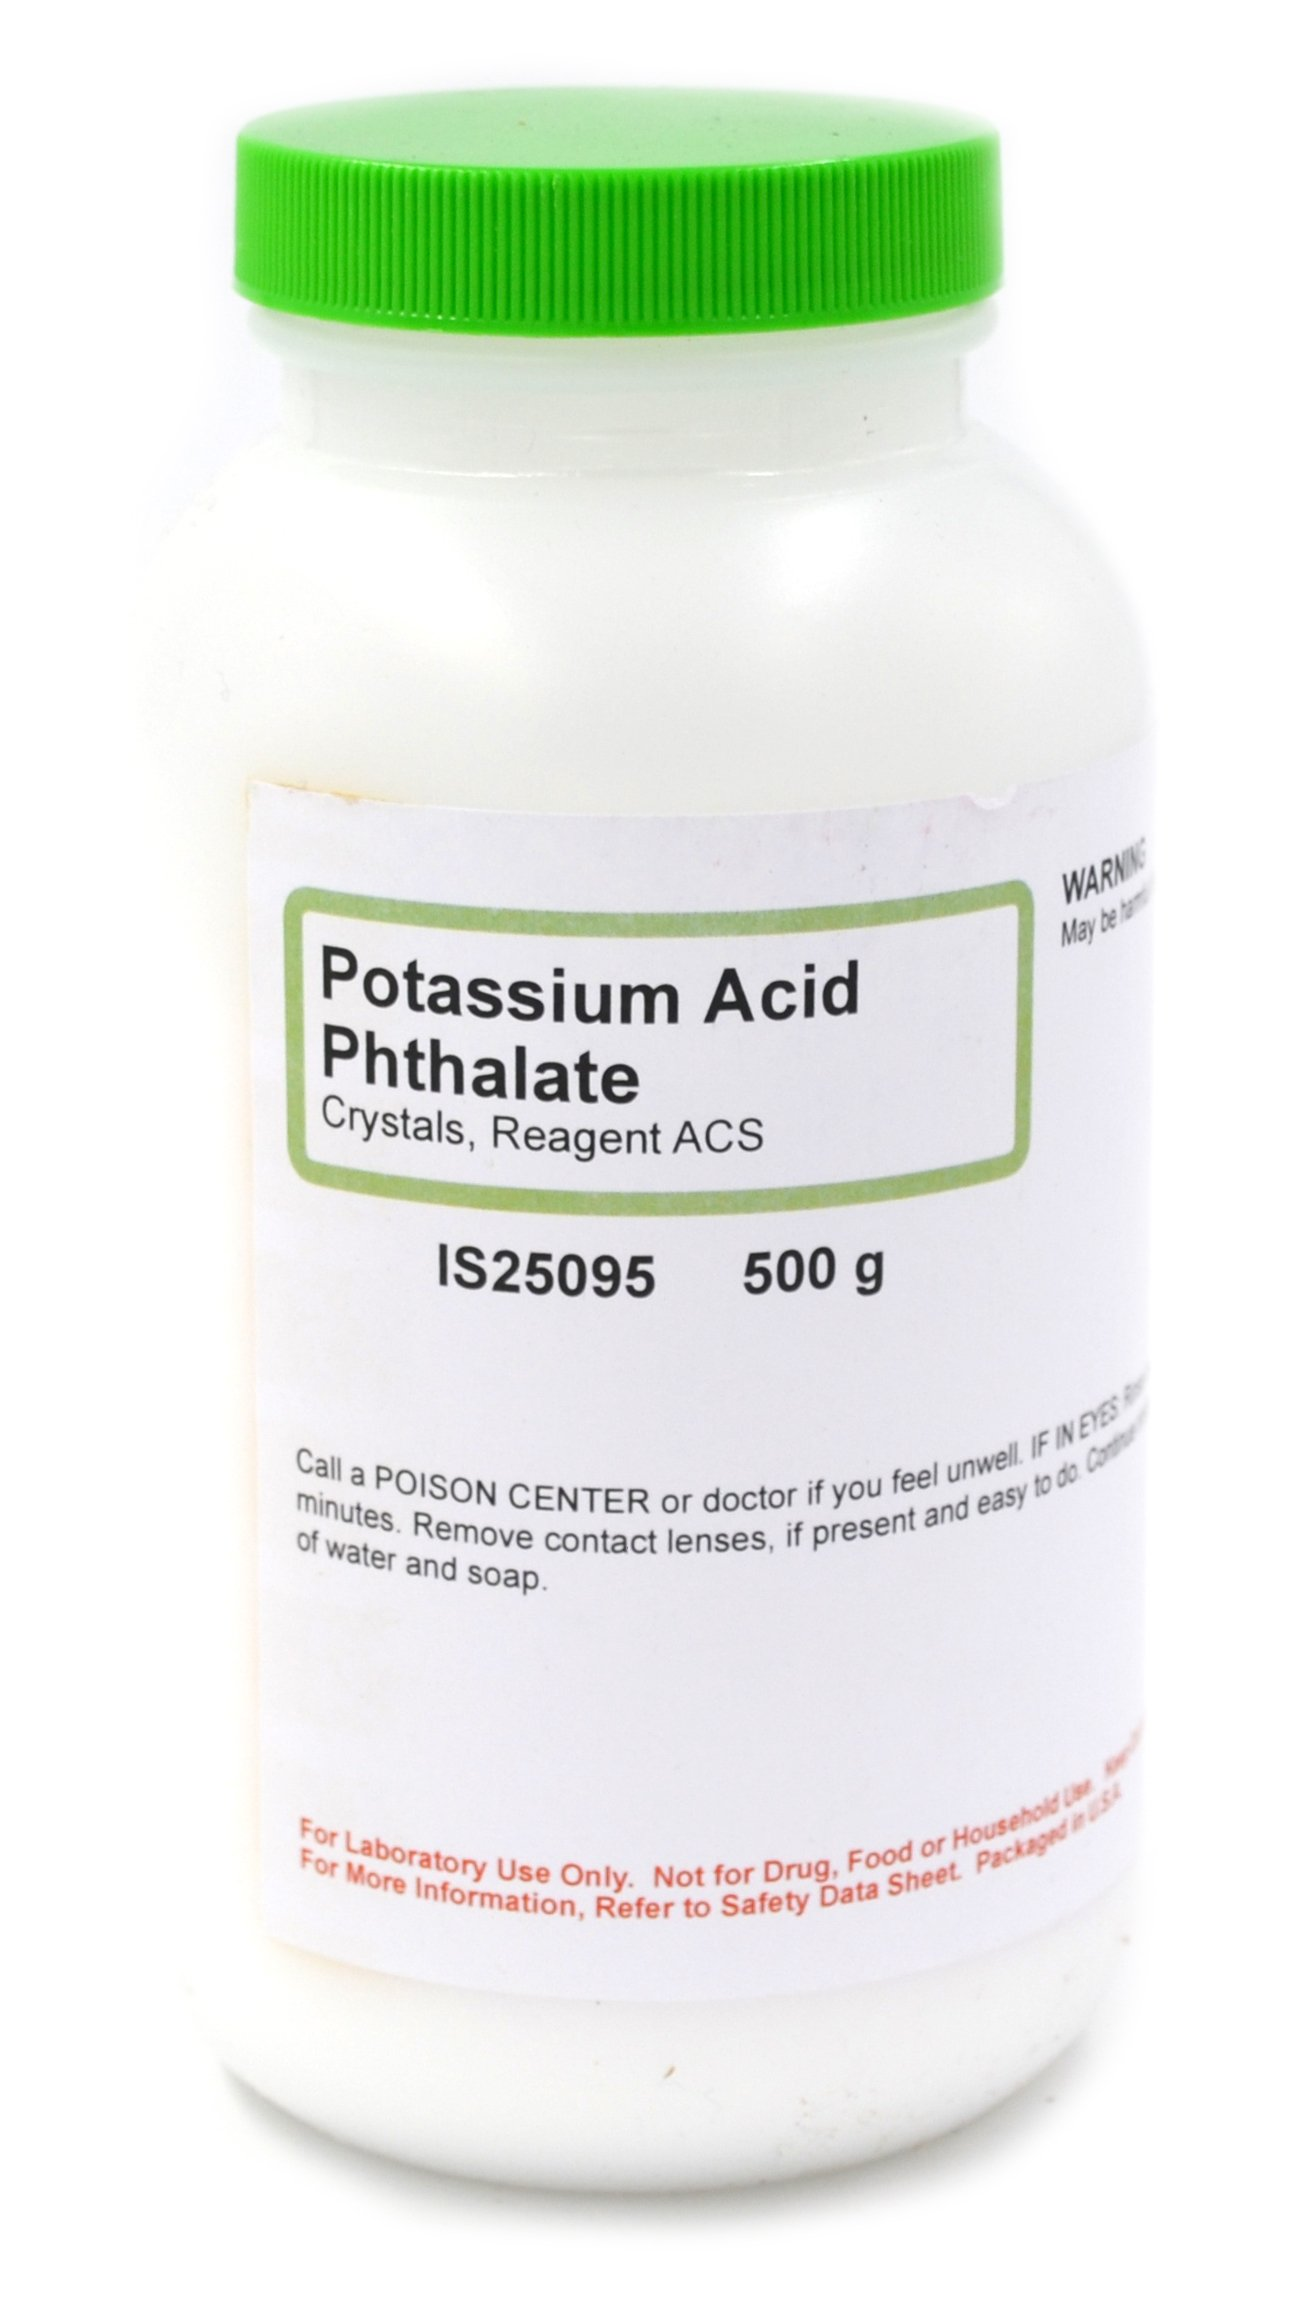 ACS-Grade Potassium Acid Phthalate Crystals, 500g - The Curated Chemical Collection